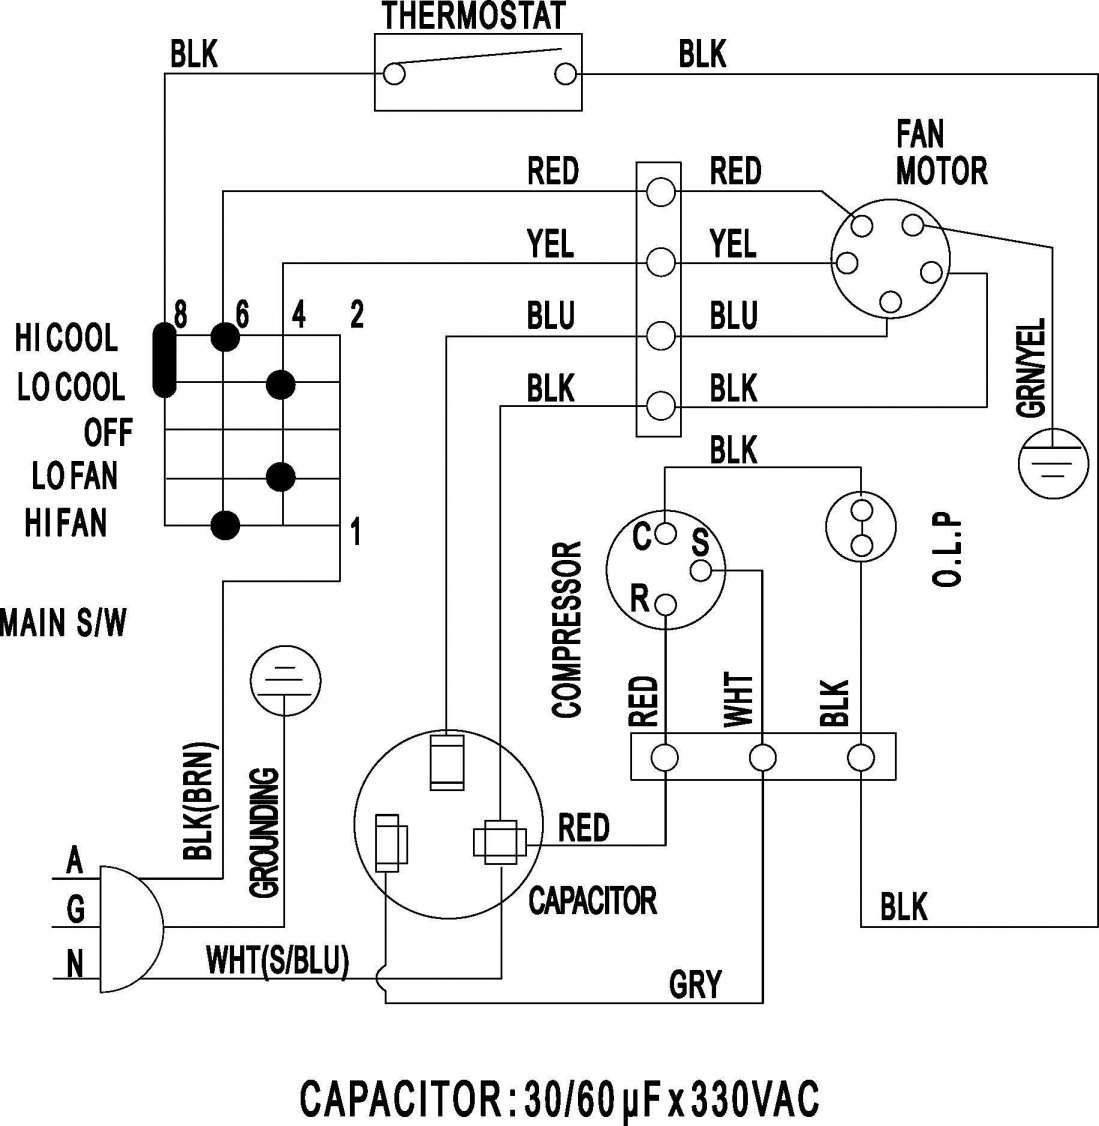 16 Ac Electric Fan Wiring Diagram Wiring Diagram Wiringg Net In 2020 Ac Wiring Electrical Circuit Diagram Electrical Wiring Diagram